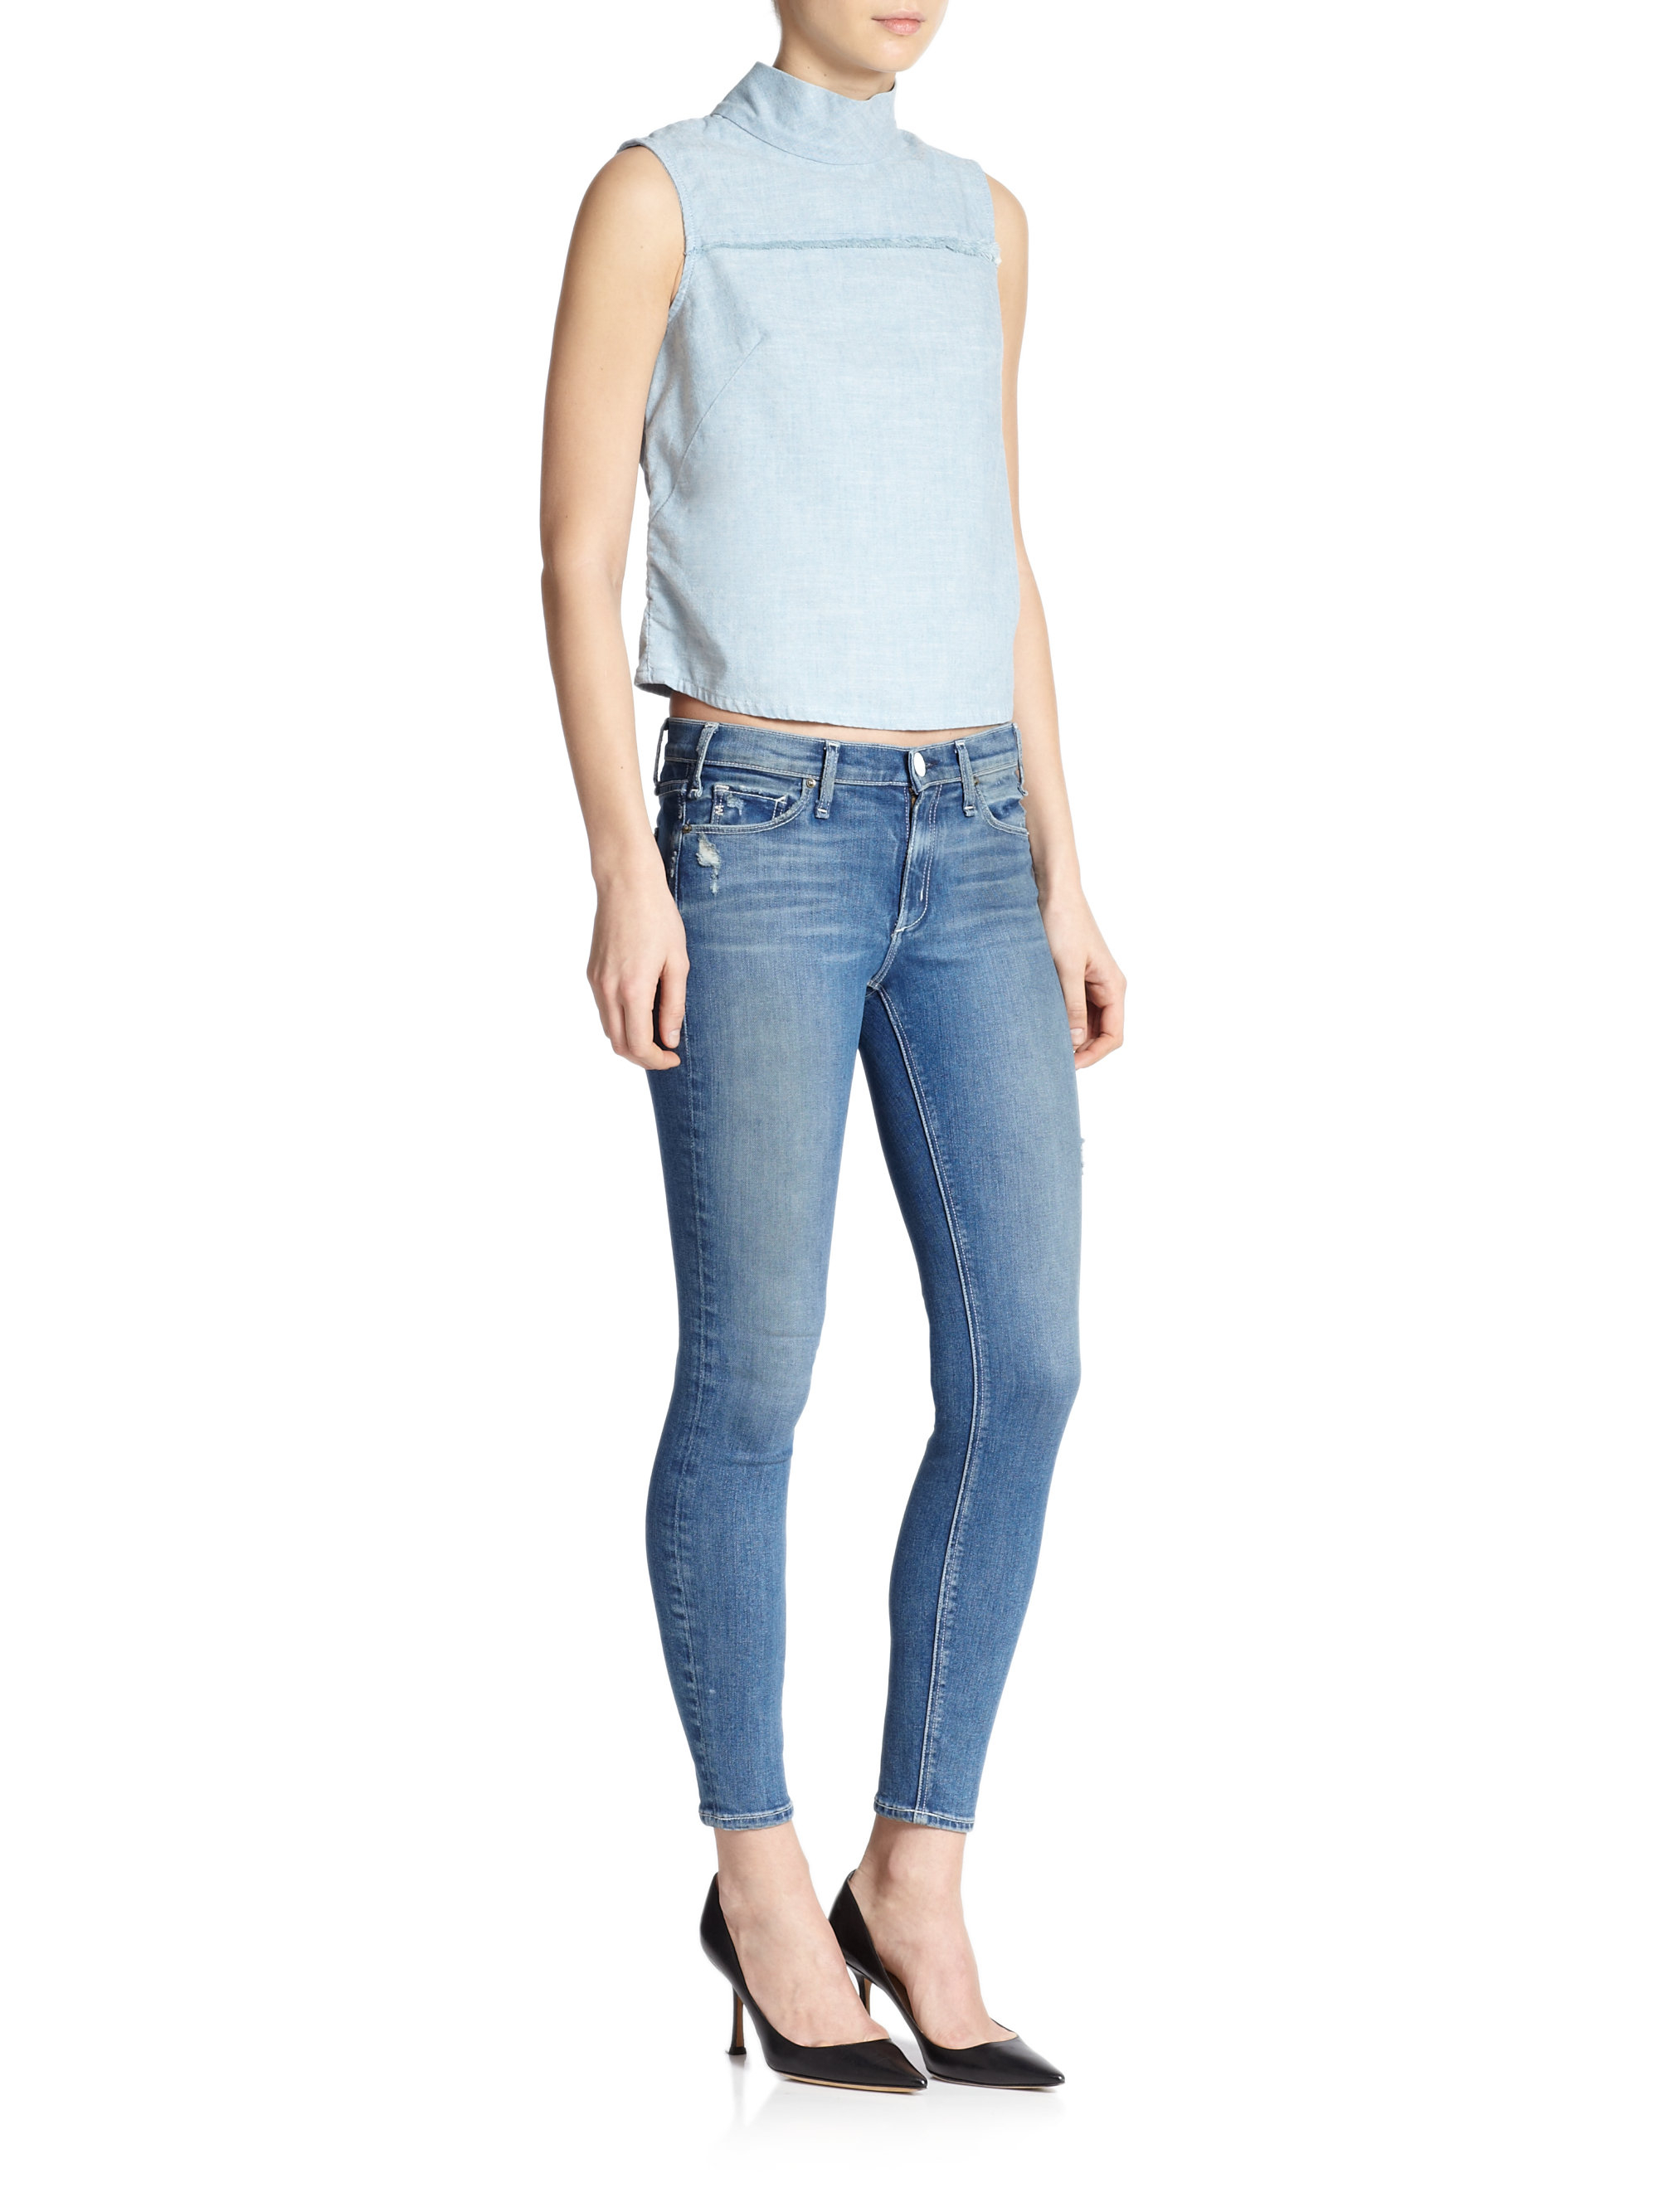 Mcguire Newton Skinny Jeans in Blue | Lyst